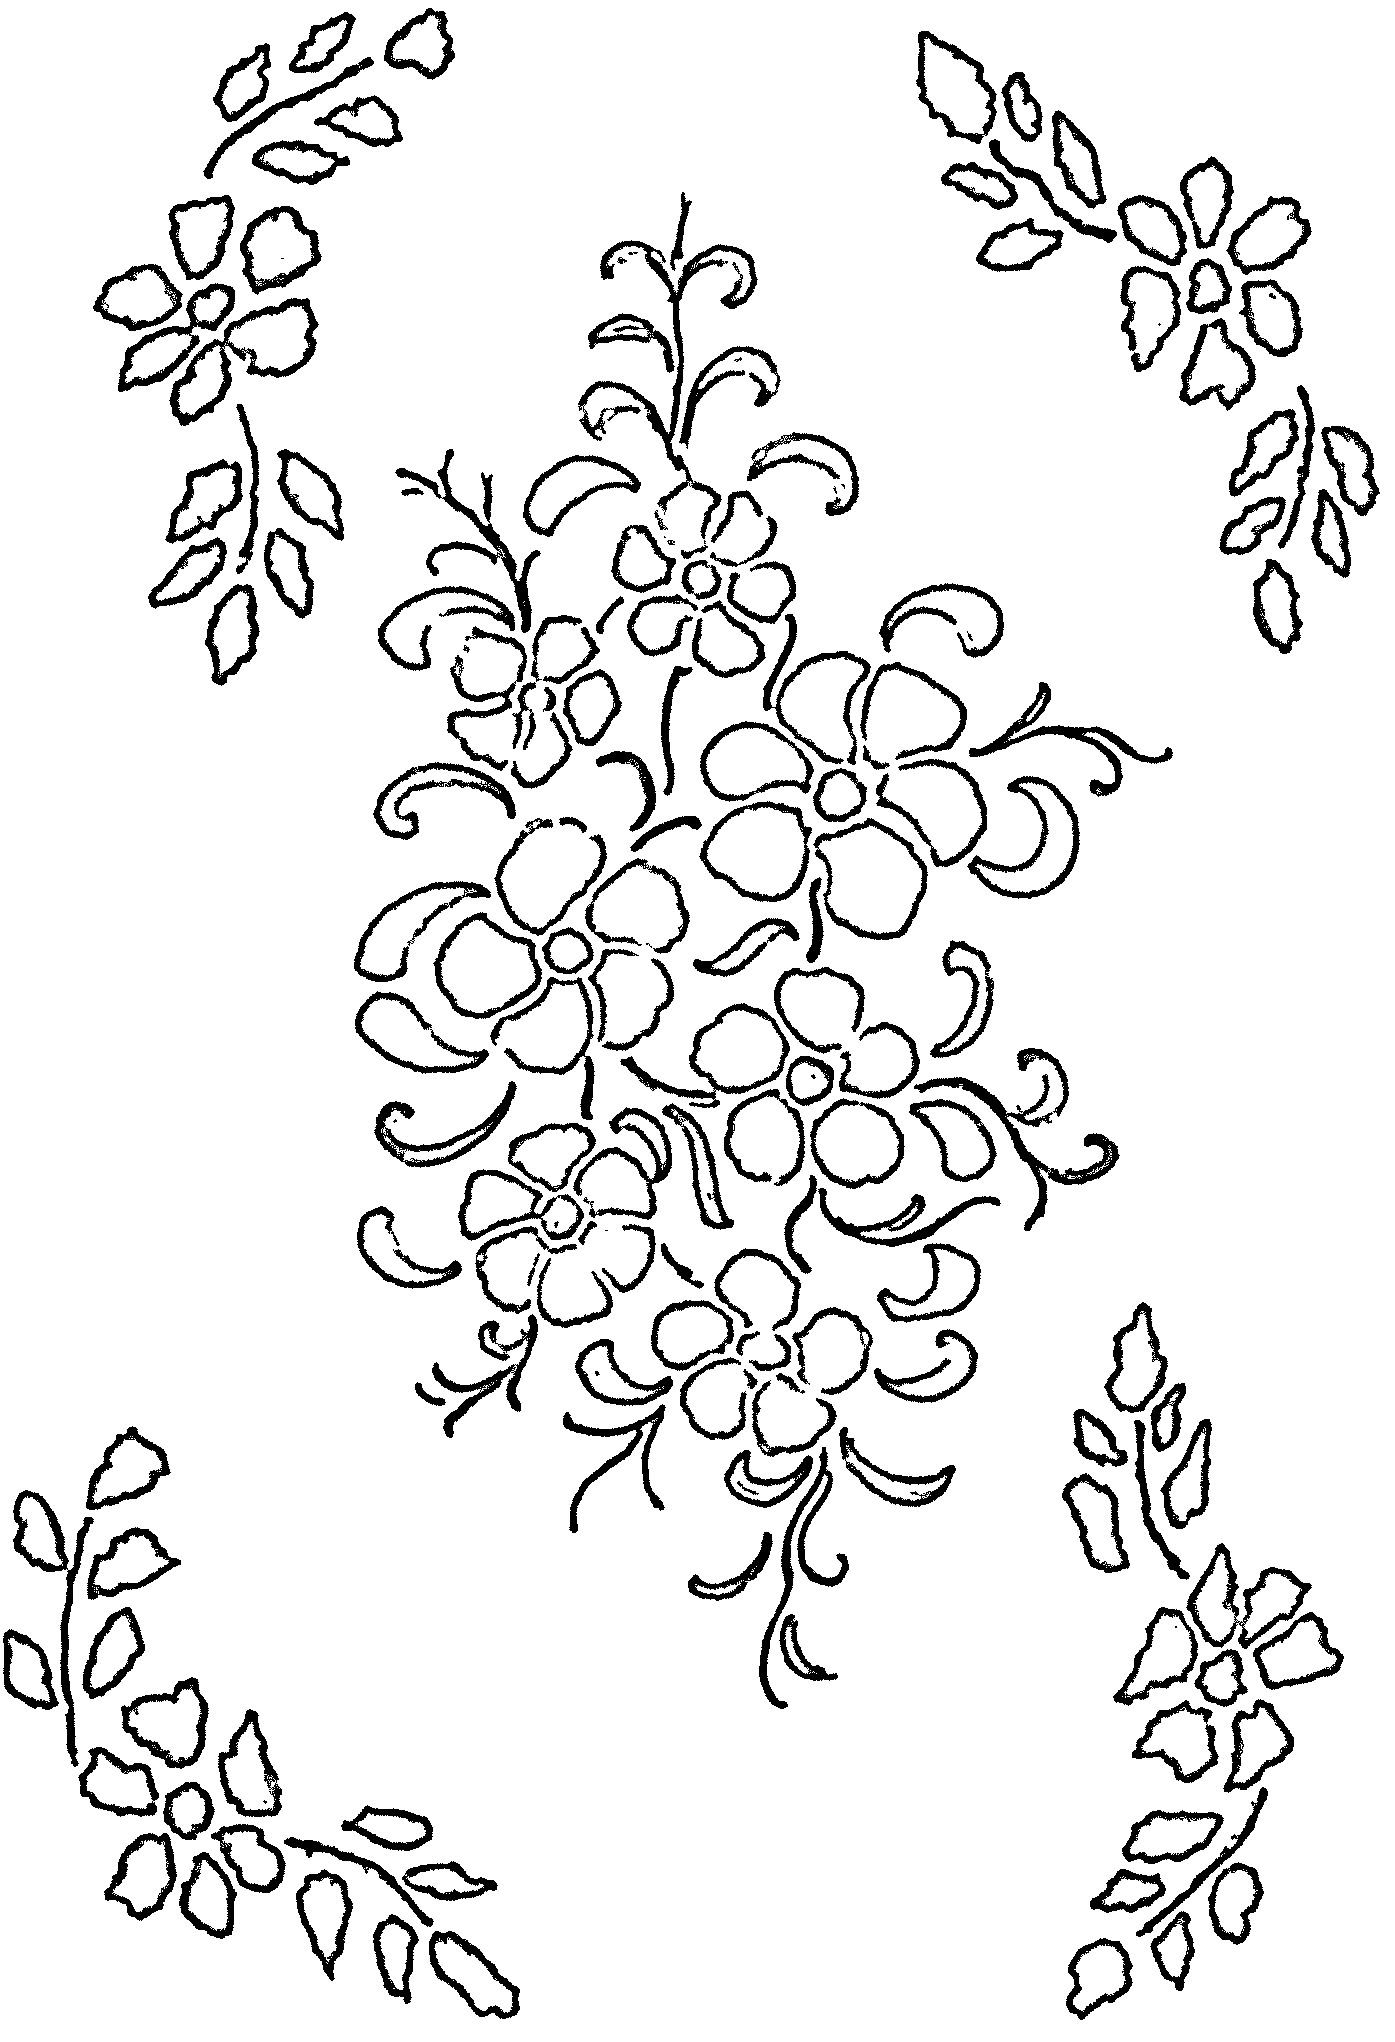 Flower Free Free Glass Painting Patterns On This Site Glass